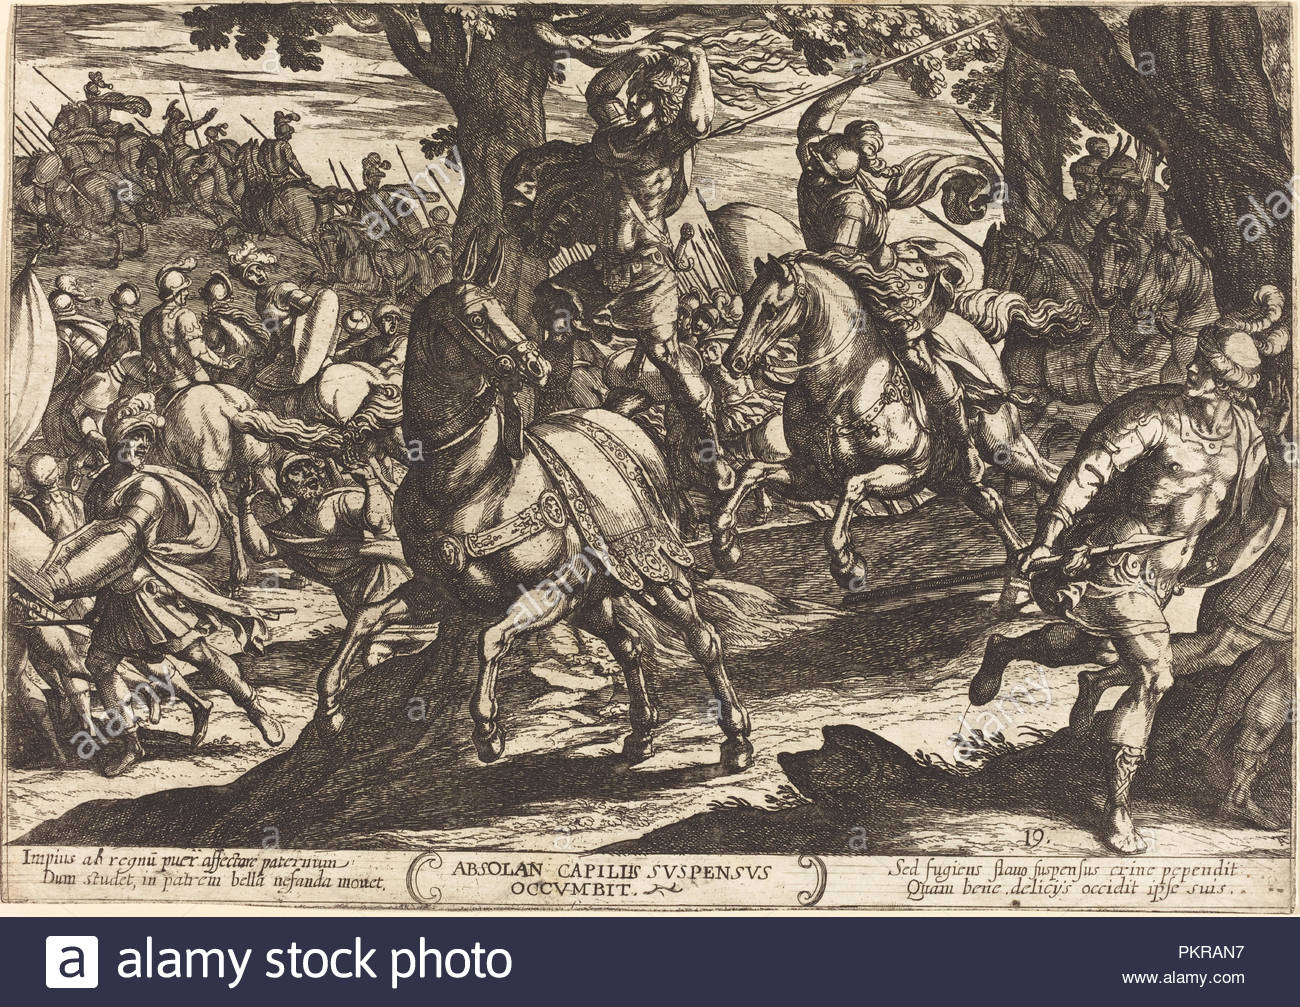 Jacob Kills Absalom, Son of King David. Dated: 1613. Medium: etching.  Museum: National Gallery of Art, Washington DC. Author: Antonio Tempesta.